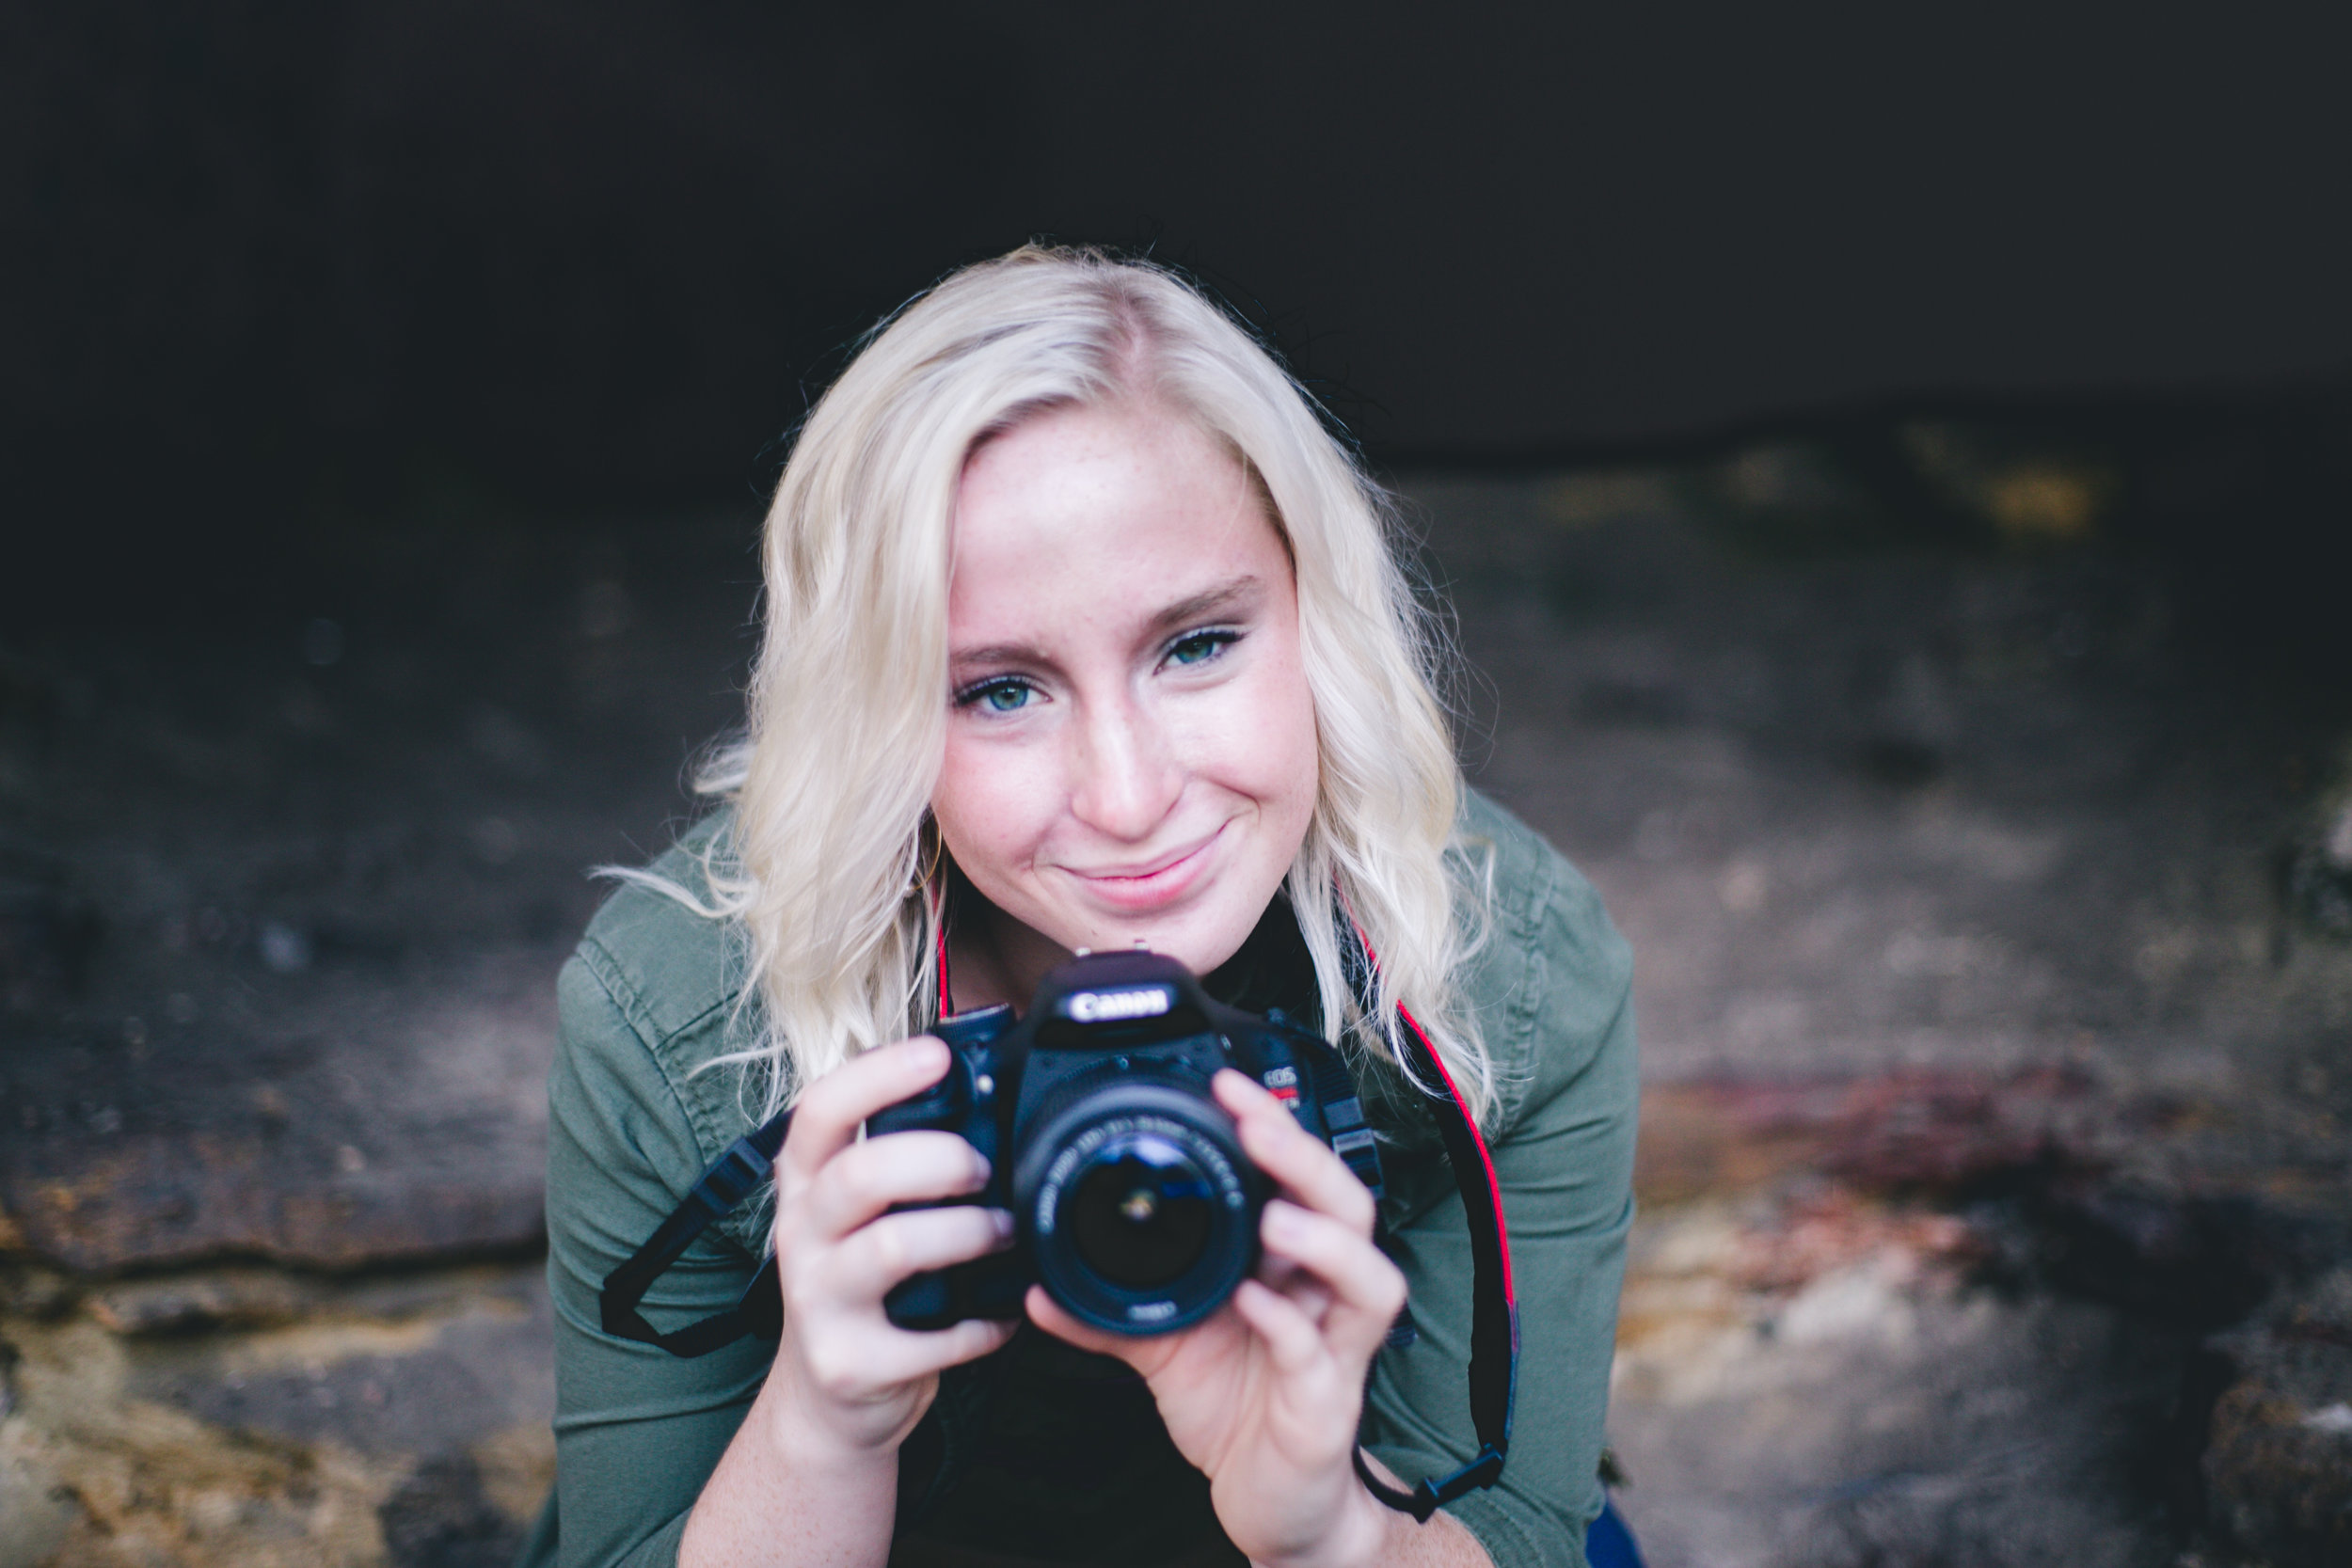 Blonde holds a Canon camera